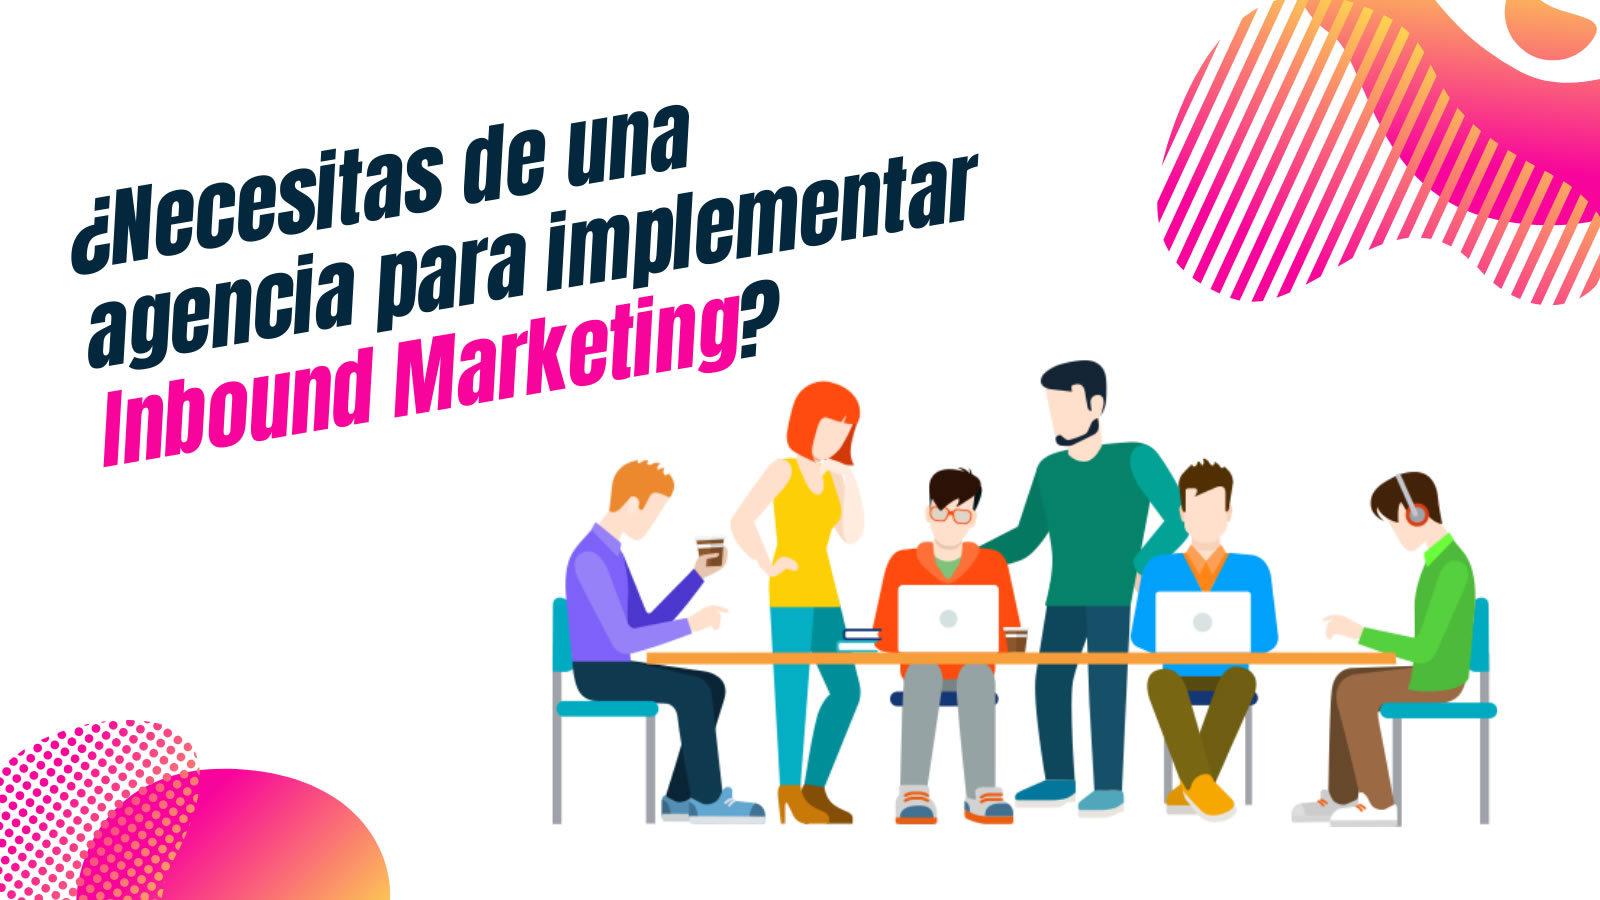 ¿Necesitas de una agencia para implementar Inbound Marketing?